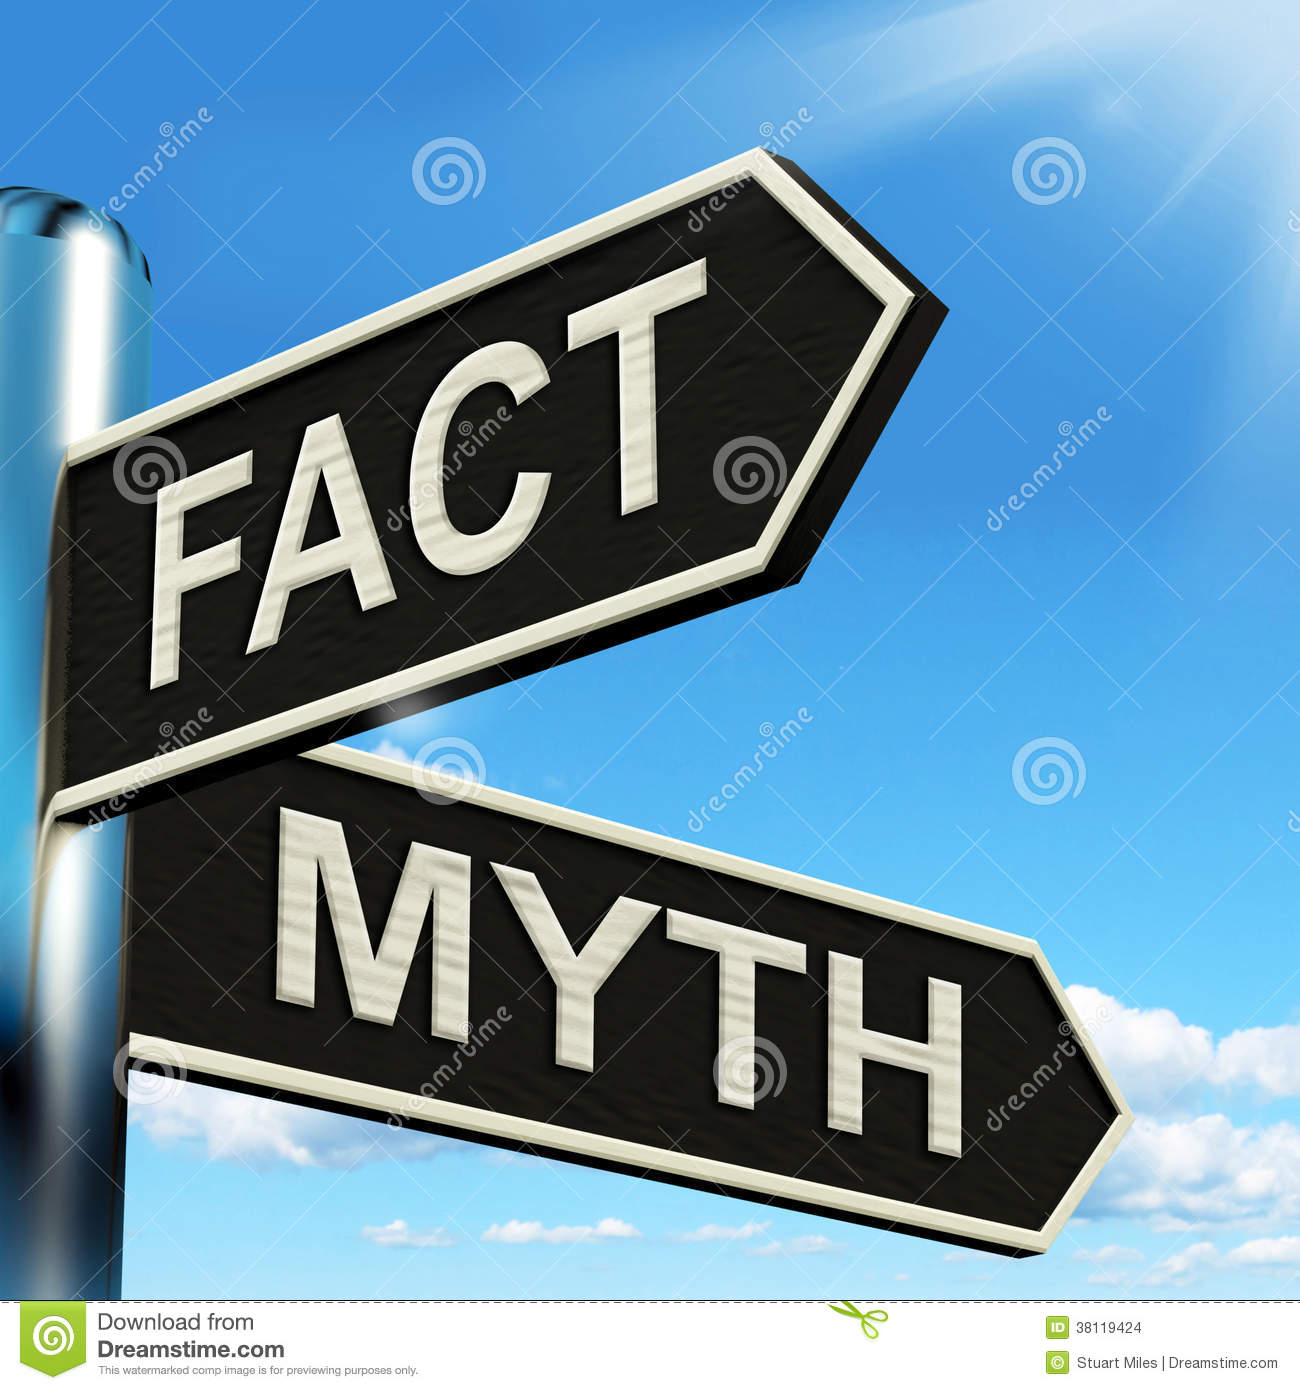 Fact Myth Signpost Means Correct Or Incorrect Information Stock Images  Image 38119424